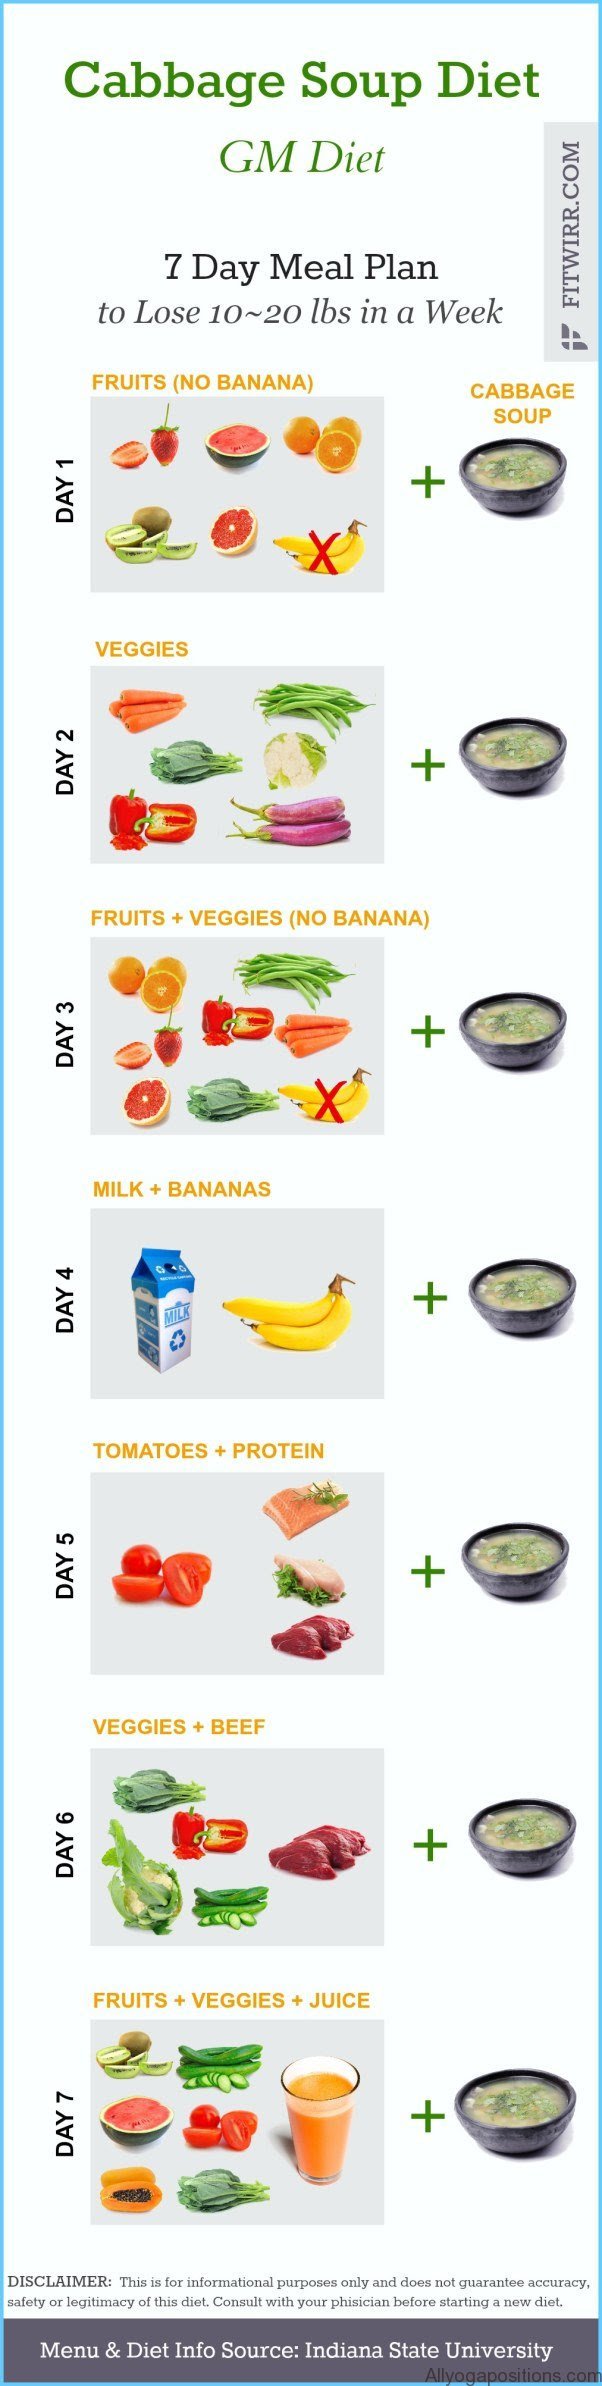 Detox Tips Weight Loss Eating Too Much How Does A Body Do It Allyogapositions Com